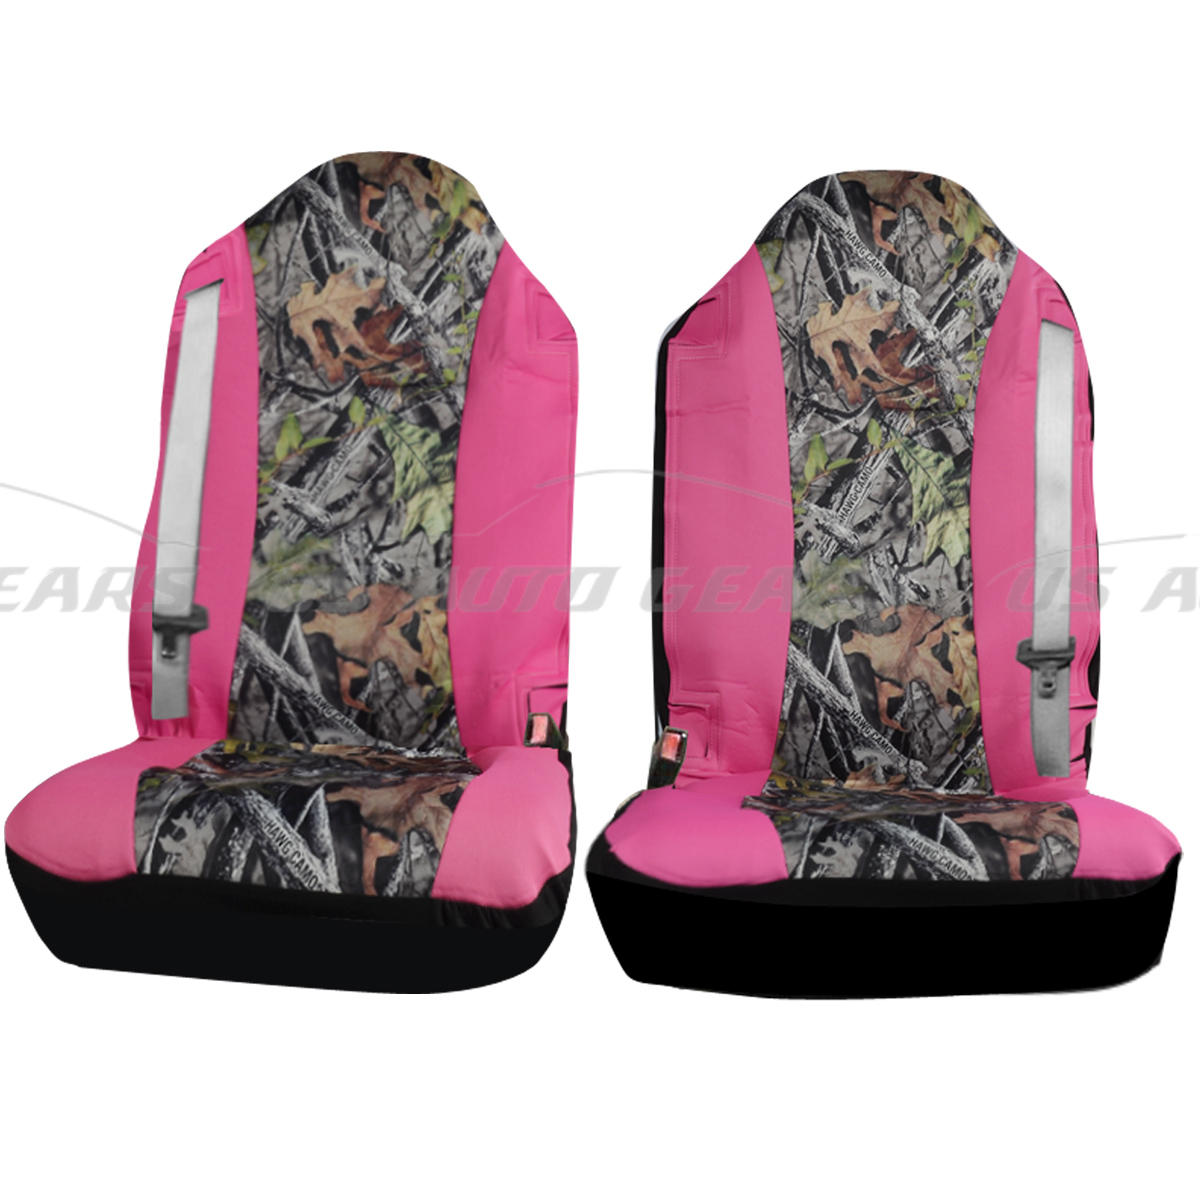 camouflage hawg camo seat cover 2 pc set cars trucks pink car floor mats u6 ebay. Black Bedroom Furniture Sets. Home Design Ideas